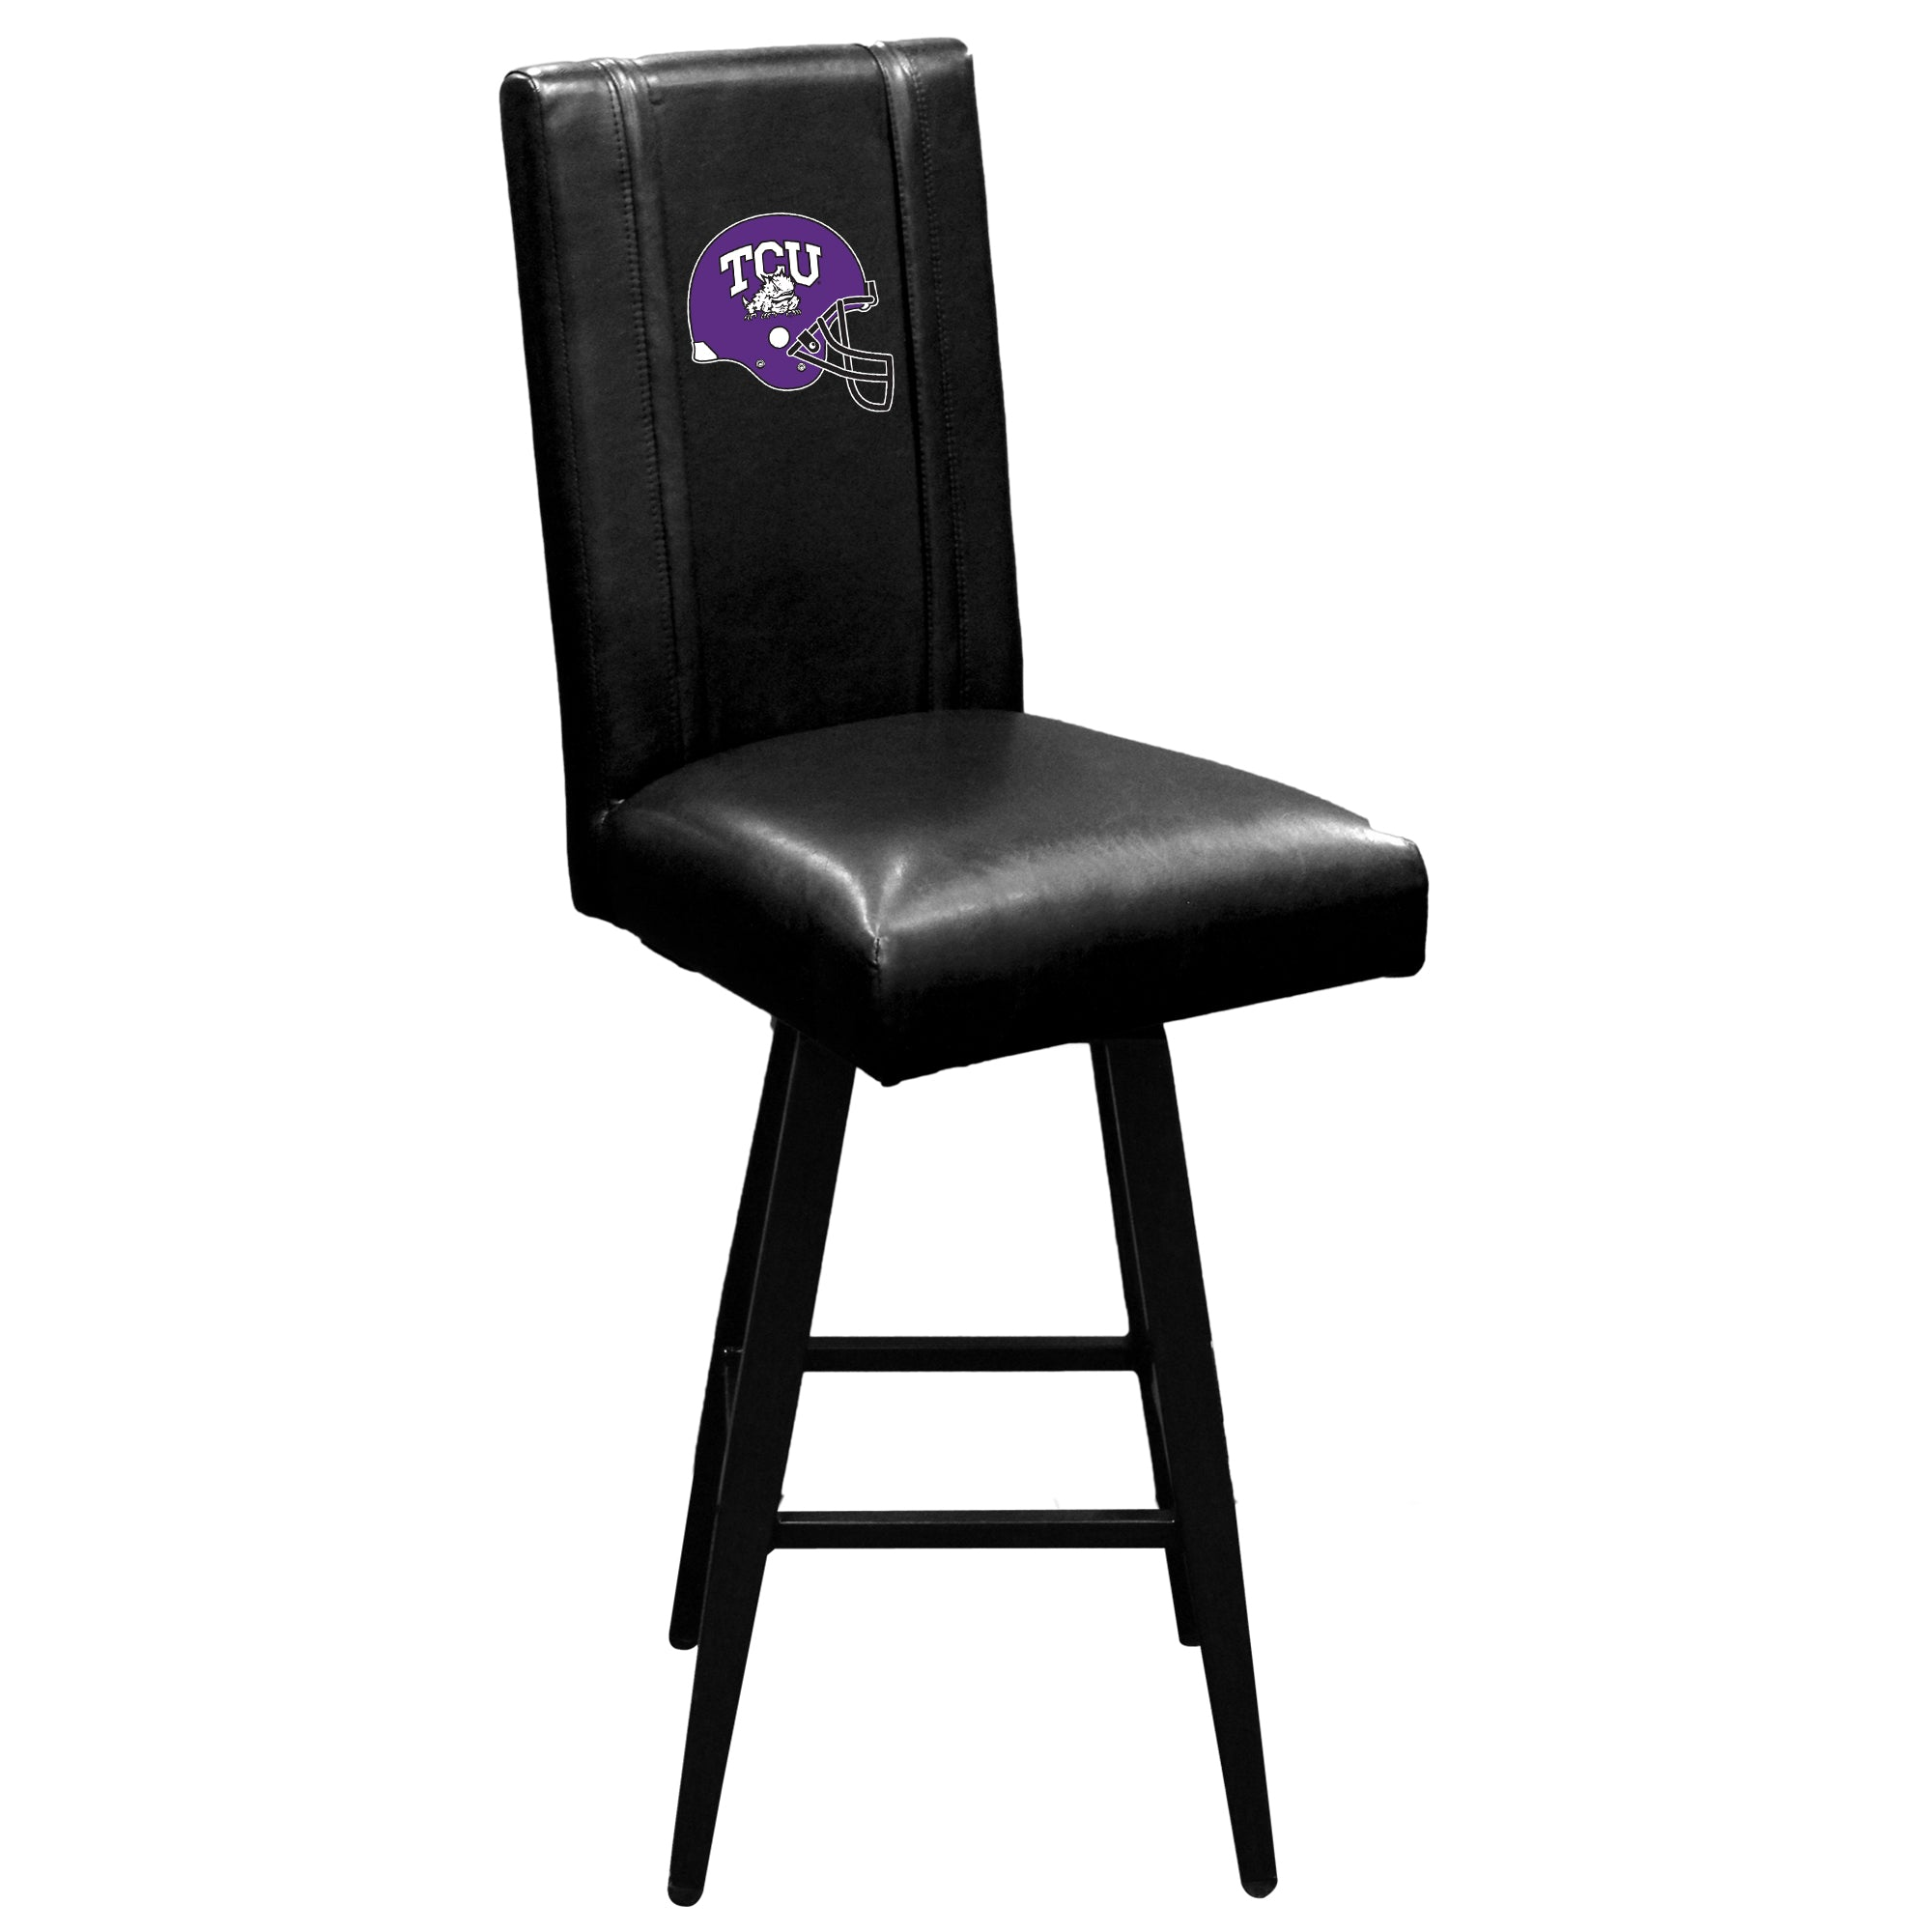 Swivel Bar Stool 2000 with TCU Horned Frogs Alternate